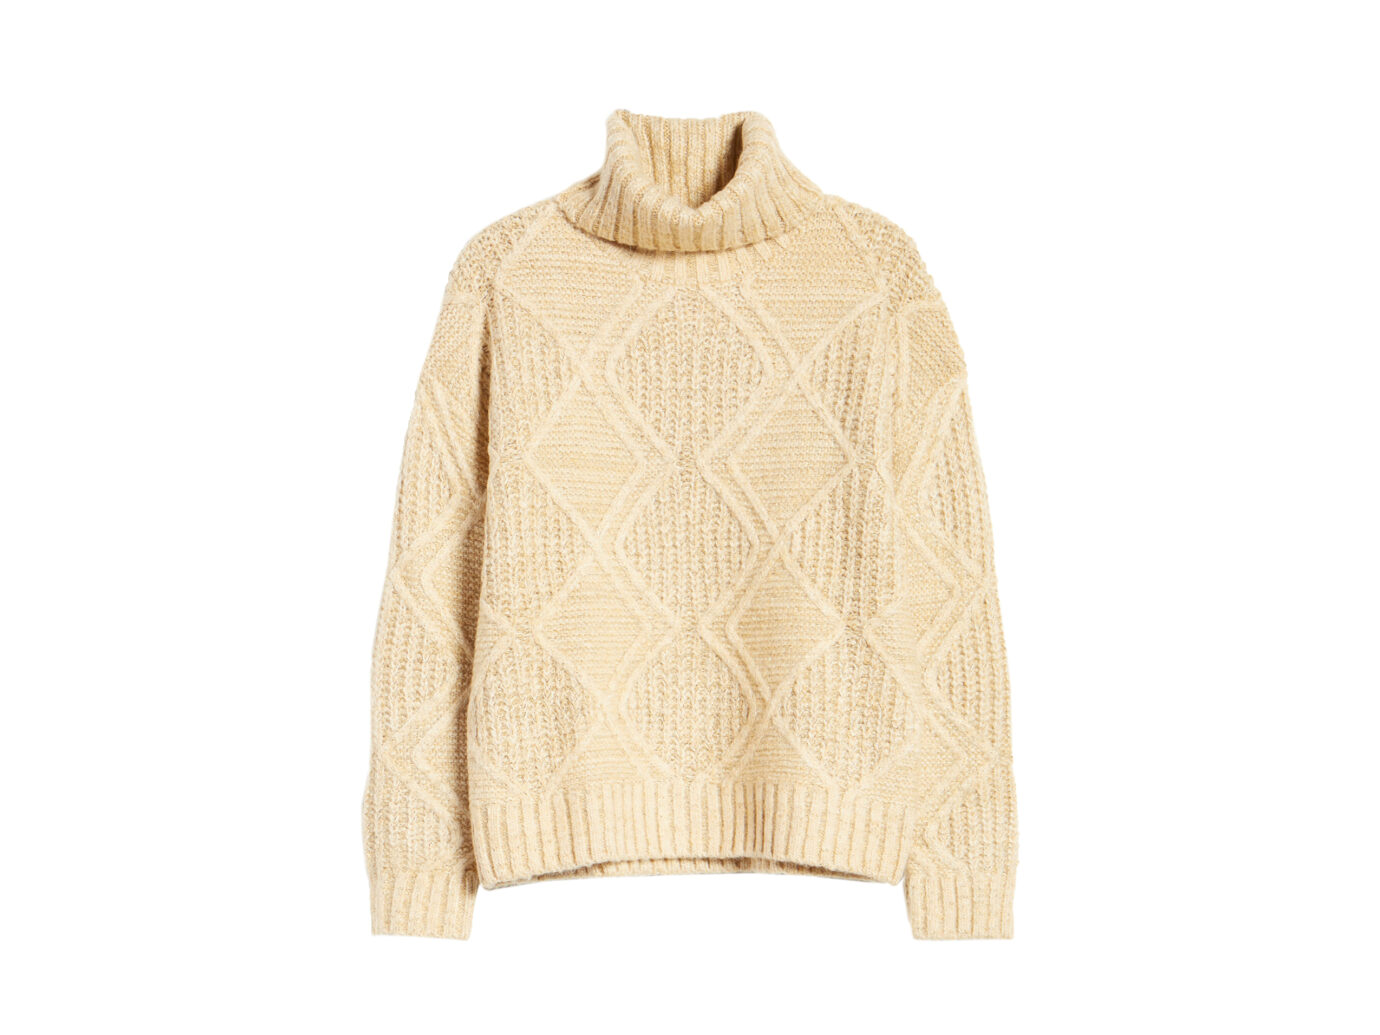 Calson Chunky Cable Knit Turtleneck Sweater